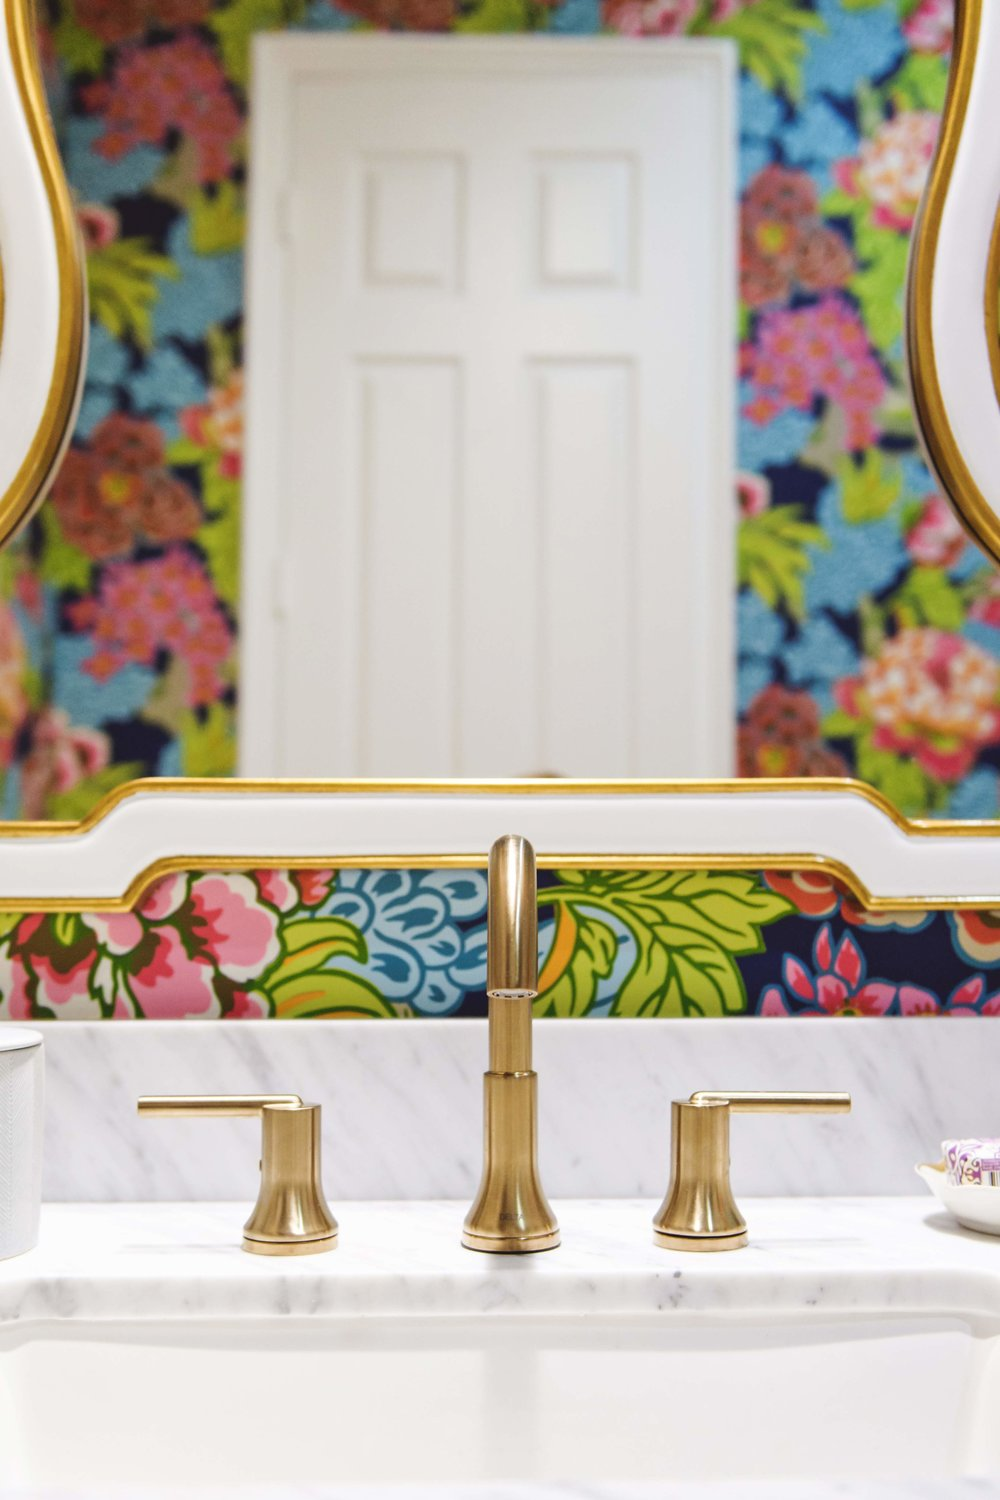 savvy {holly leaf} hall bathroom-0033.jpg